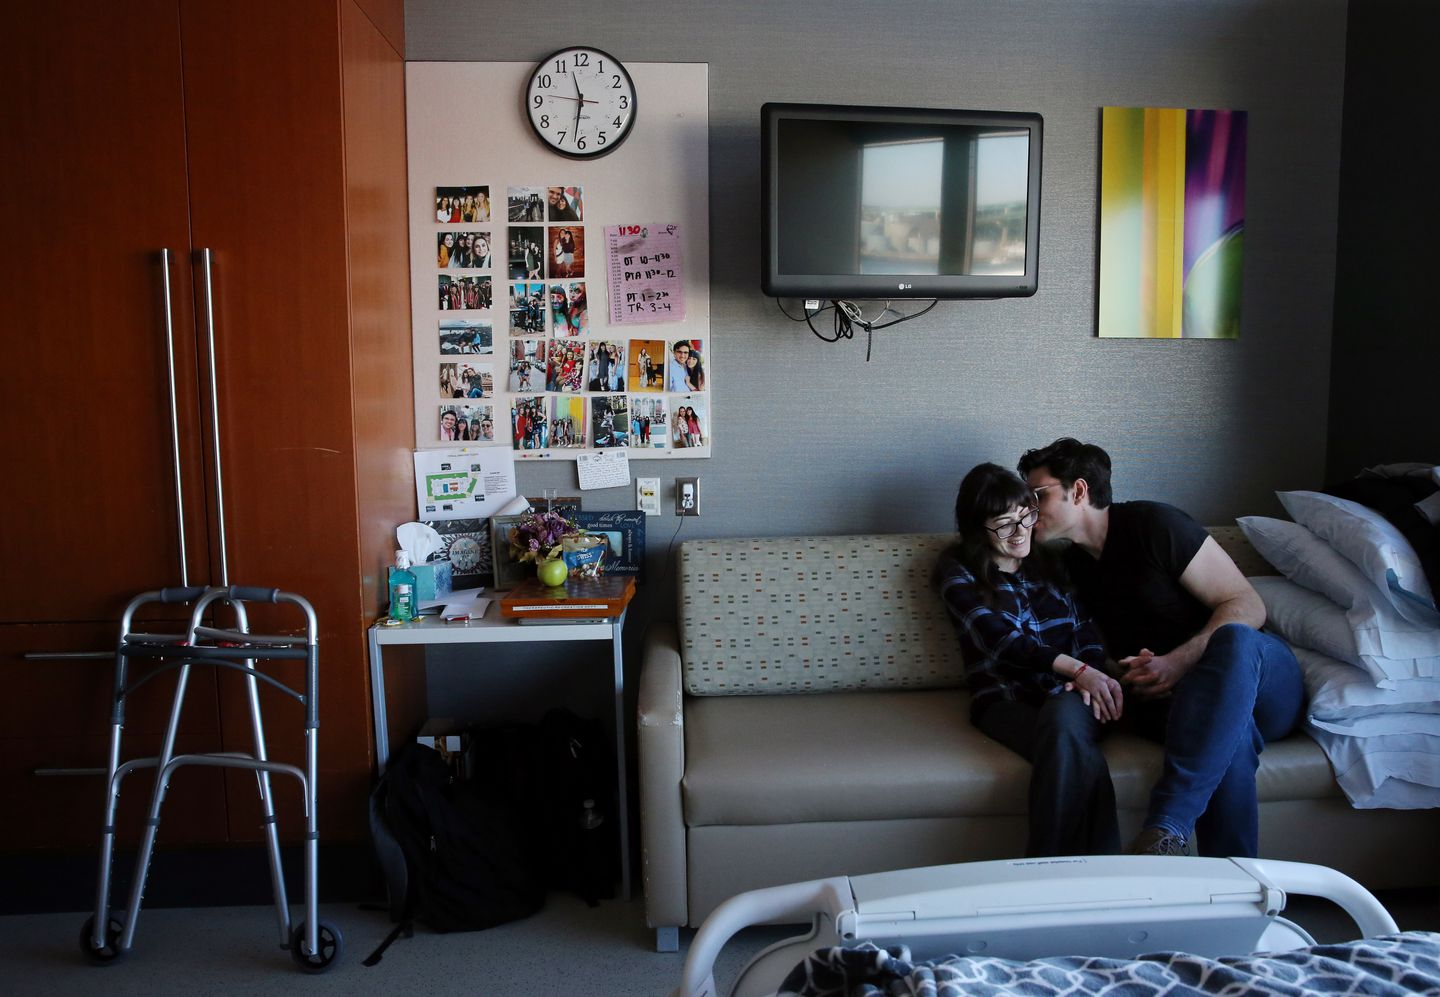 Sonya shared a moment with her boyfriend, Alex Pankiewicz, in her room at Spaulding Rehabilitation Center in Charlestown.